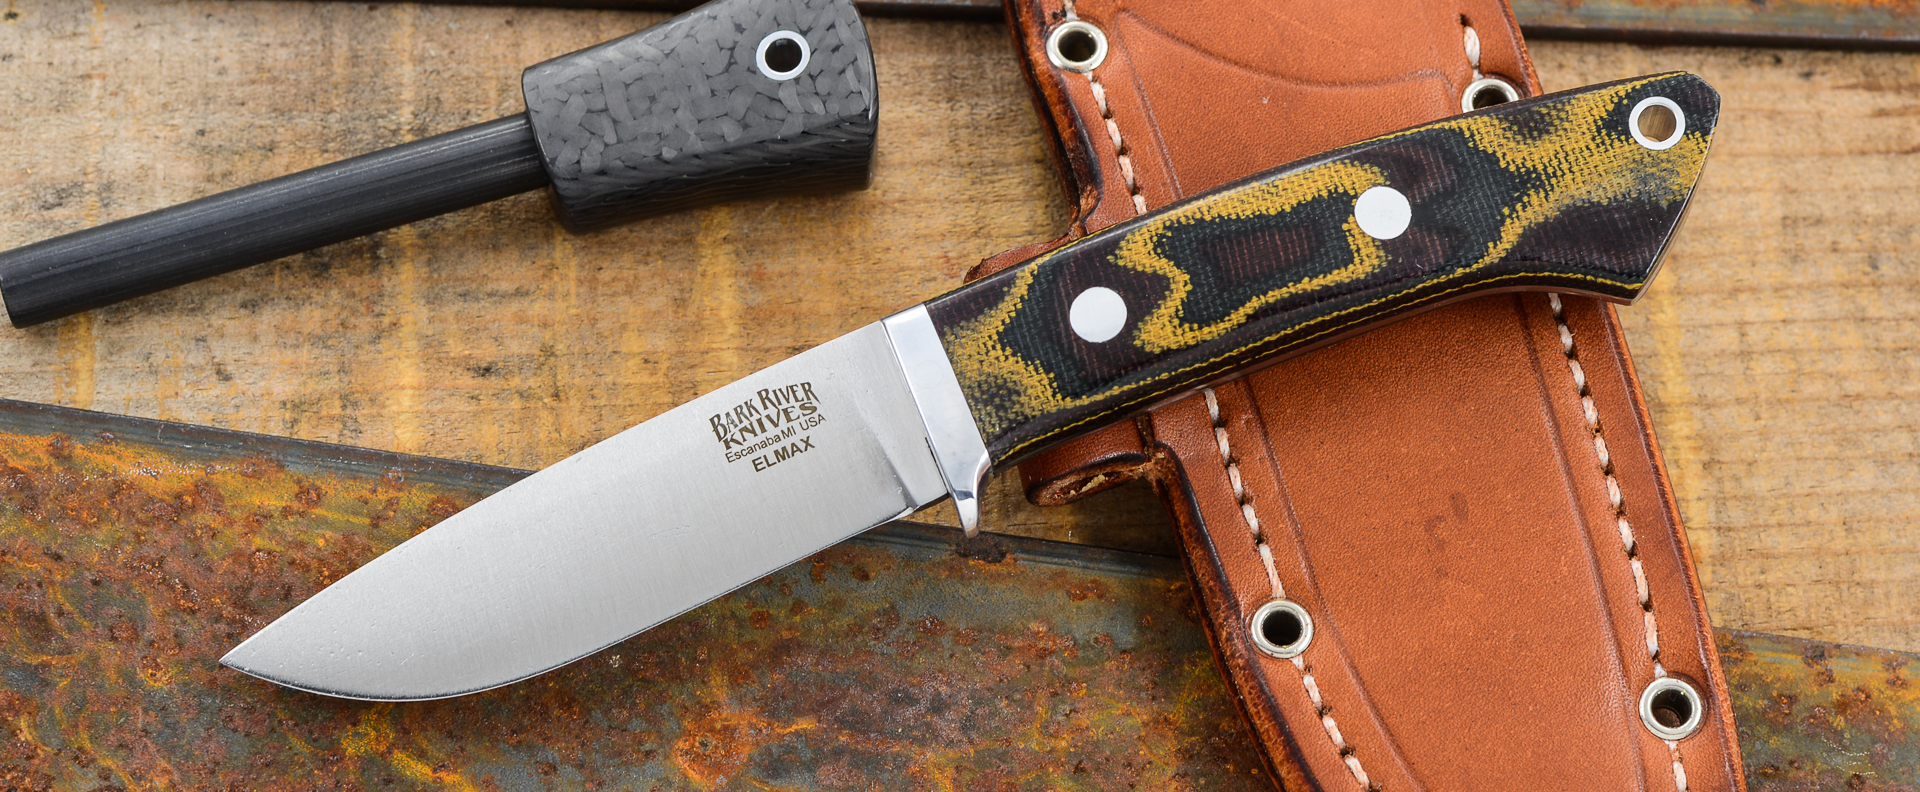 Knivesshipfree Premium Knives Shipped Free All In Stock